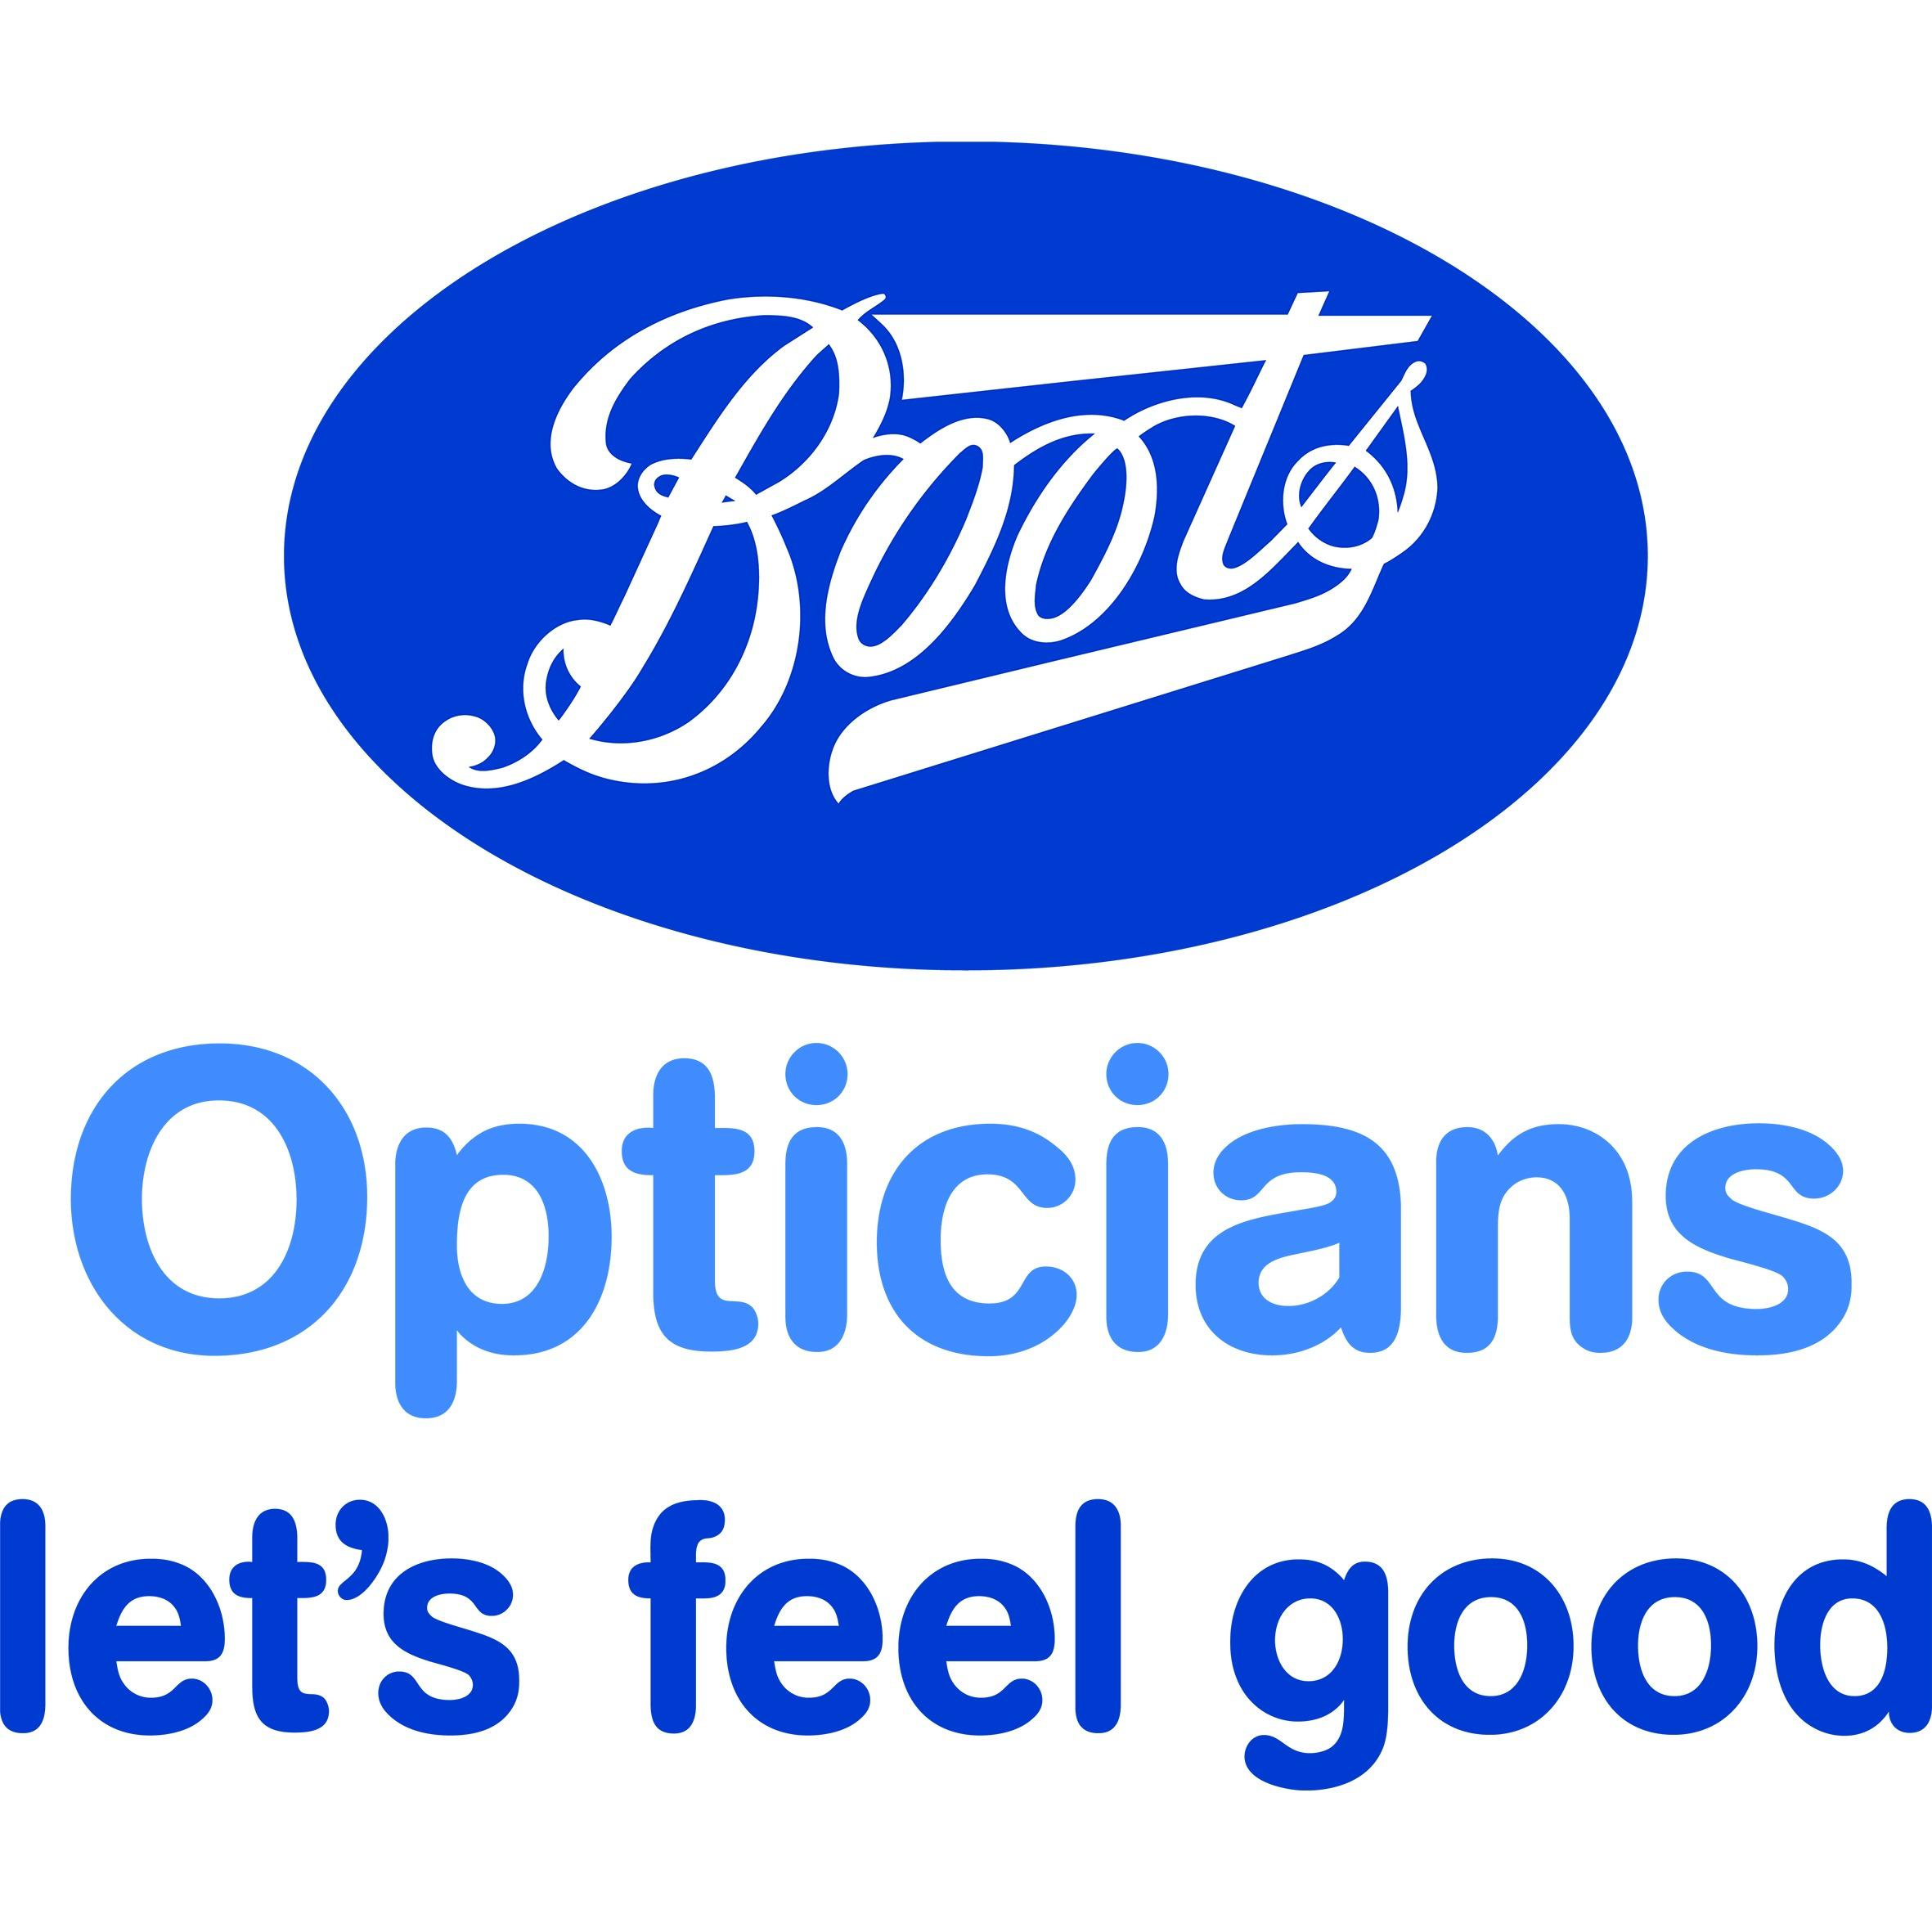 Boots Opticians - Wisbech, Cambridgeshire PE13 1AR - 03451 253776 | ShowMeLocal.com